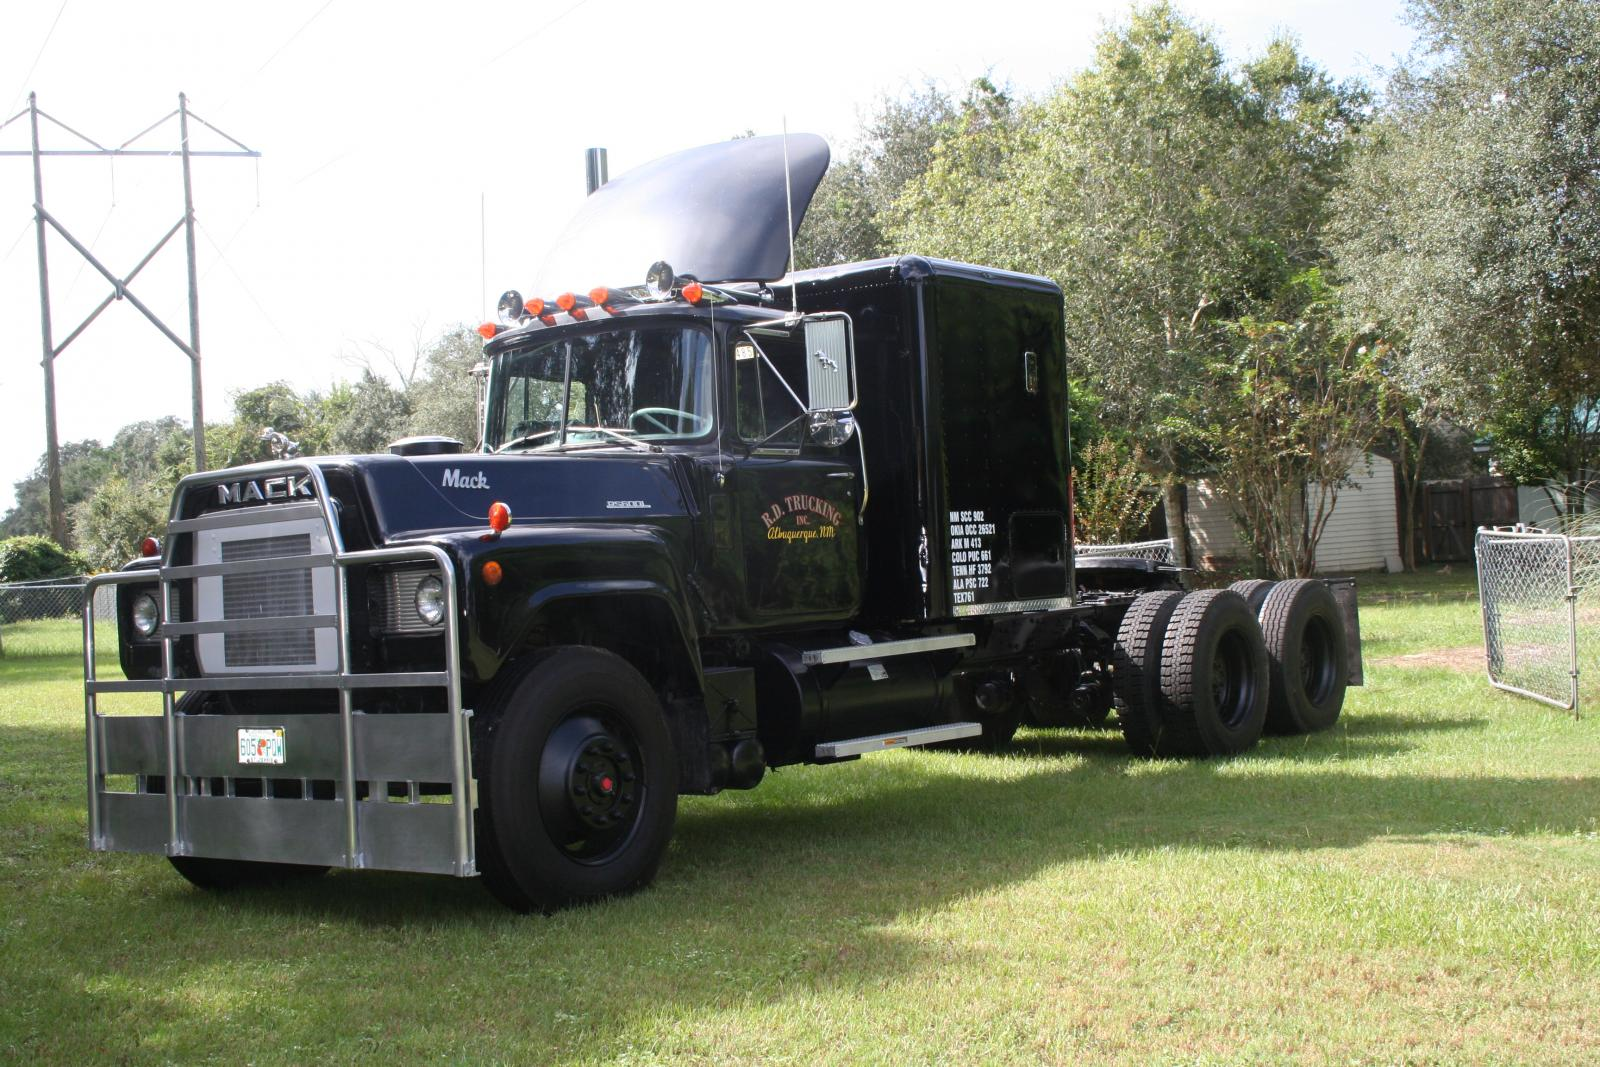 Rubber Duck replica truck for sale - Antique and Classic ...